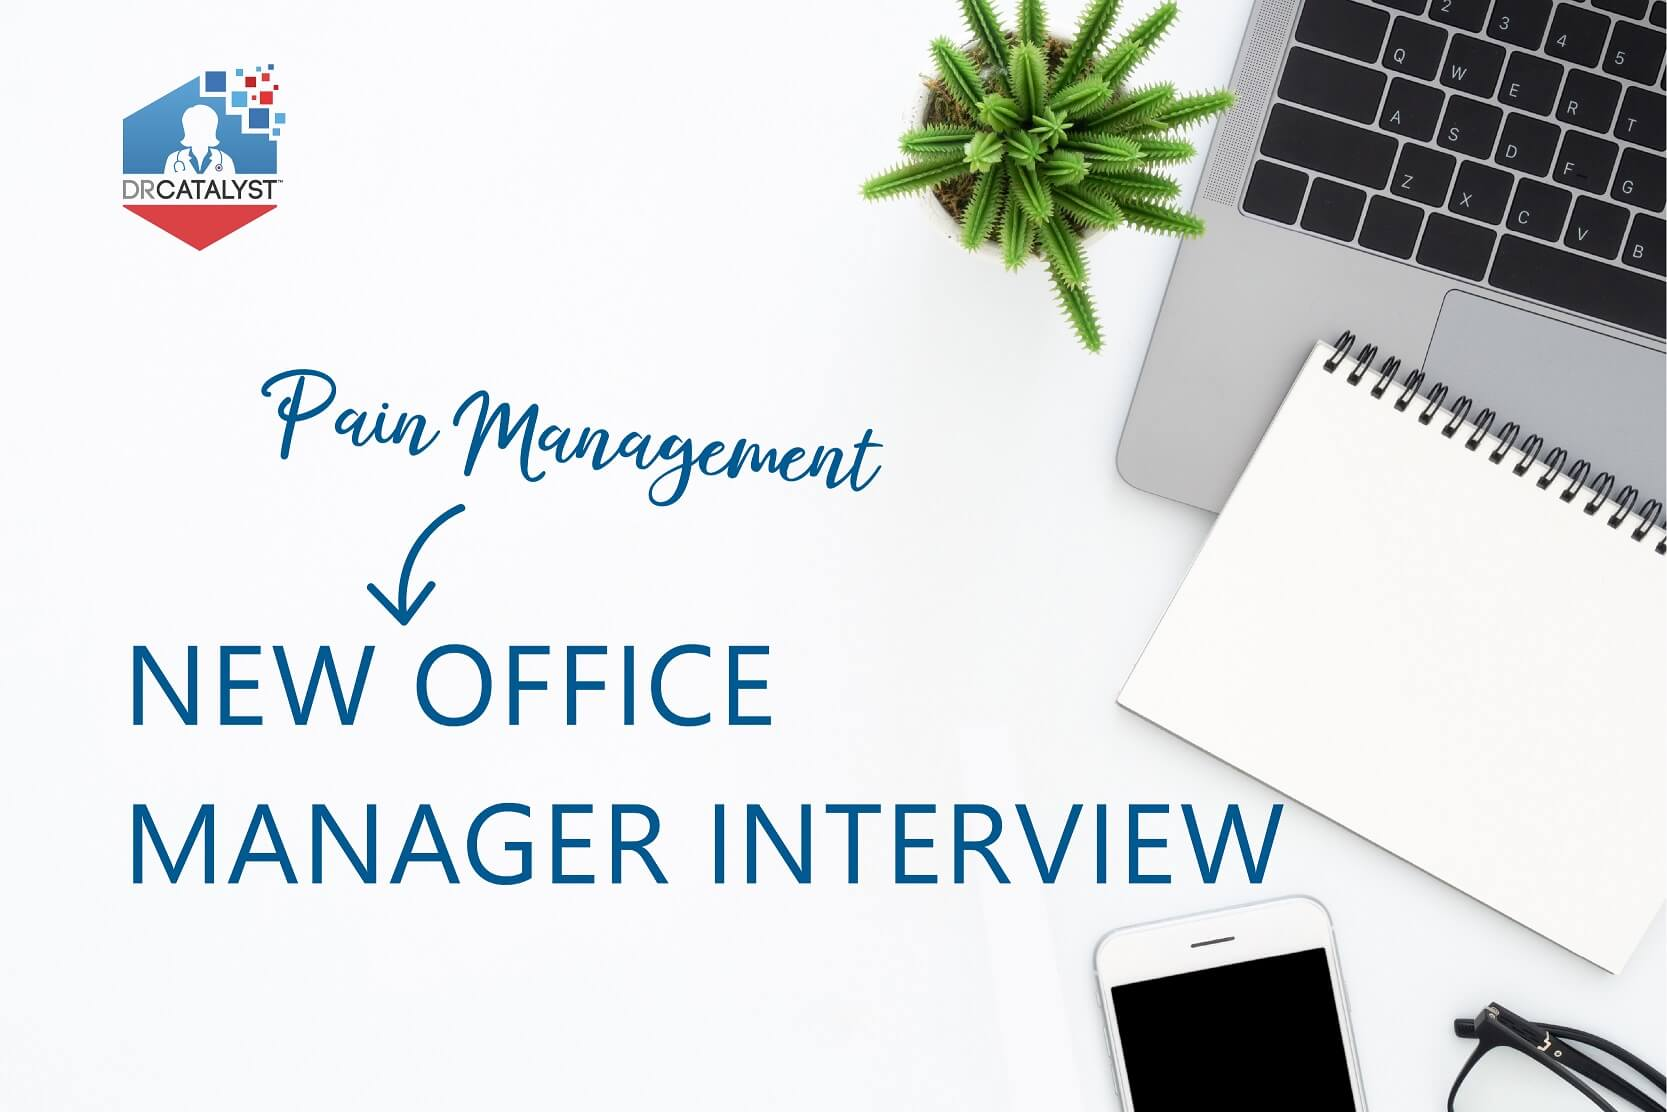 new office manager interview pain management